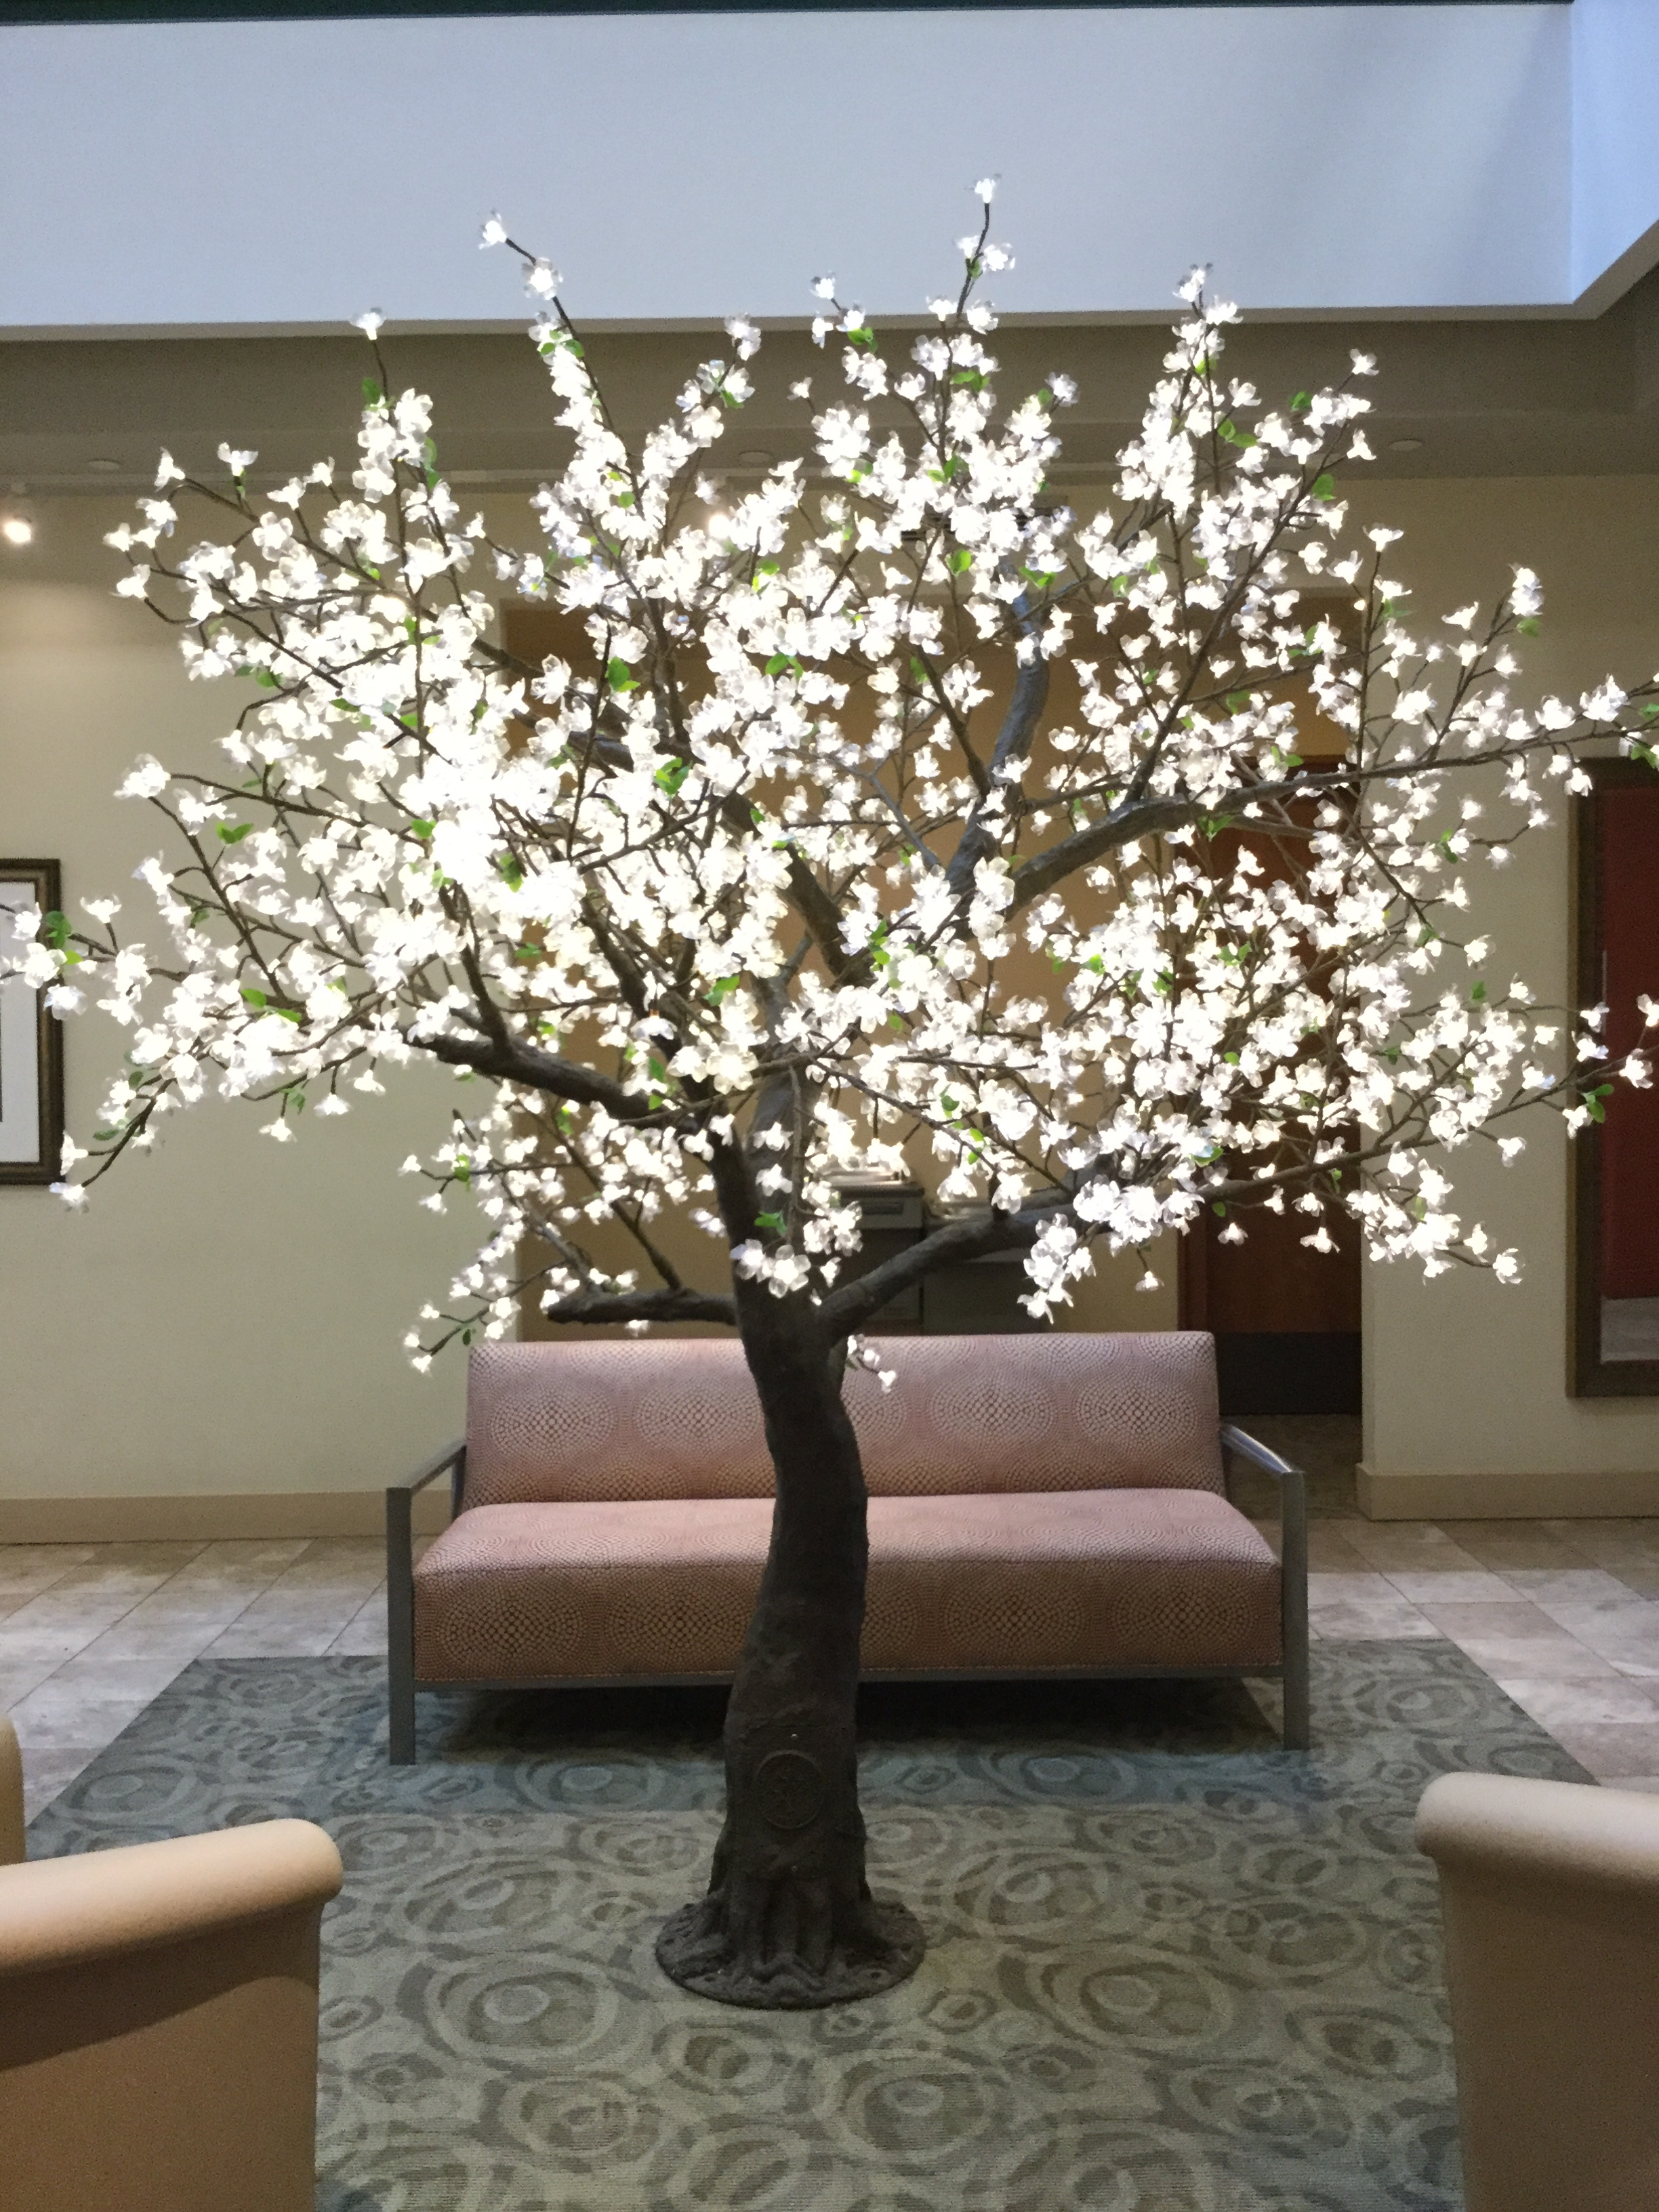 9ft Flatiron   Flatiron trees fill any space. These are great focal points at events and can be placed anywhere in the venue. They are fitting for both inside and out use and can be dimmed with a dimmer switch if desired.    The Tree Is 12feet Tall And 12feet In Diameter. It Has 1632 LEDs On 34 Branches, and 90 Watts.  Colors Available For Hire:   Warm White, Pure White, Red, Blue, Green, Yellow, Purple, light blue And Multi Color.            $495 per Tree